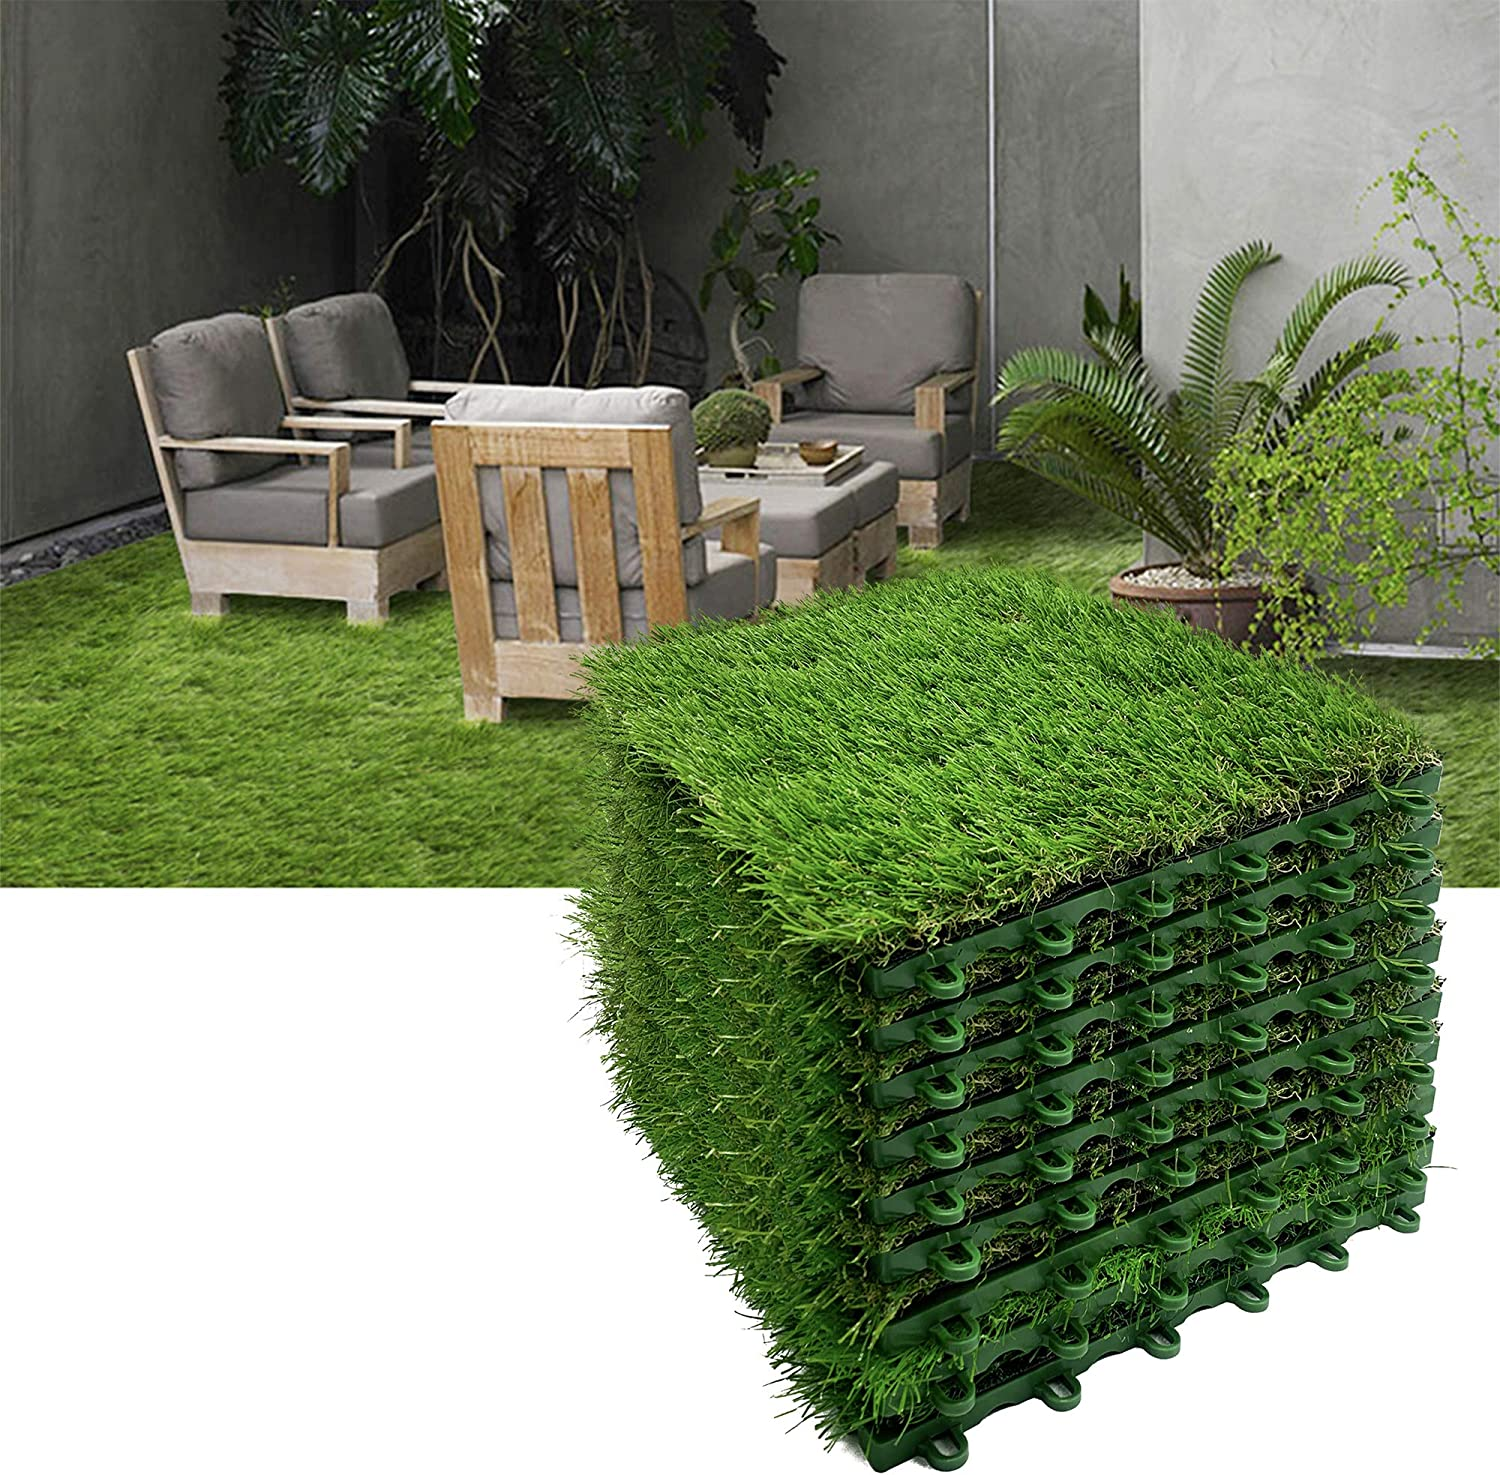 Reliancer 9pcs Artificial Grass Turf Interlocking Grass Tile Lawn Rug For Dogs Puppy Potty Pads Pet Synthetic Square Grass Carpet Golf Mat Outdoor Landscaping Indoor Flooring Decor 12 X12 Amazon Co Uk Kitchen Home